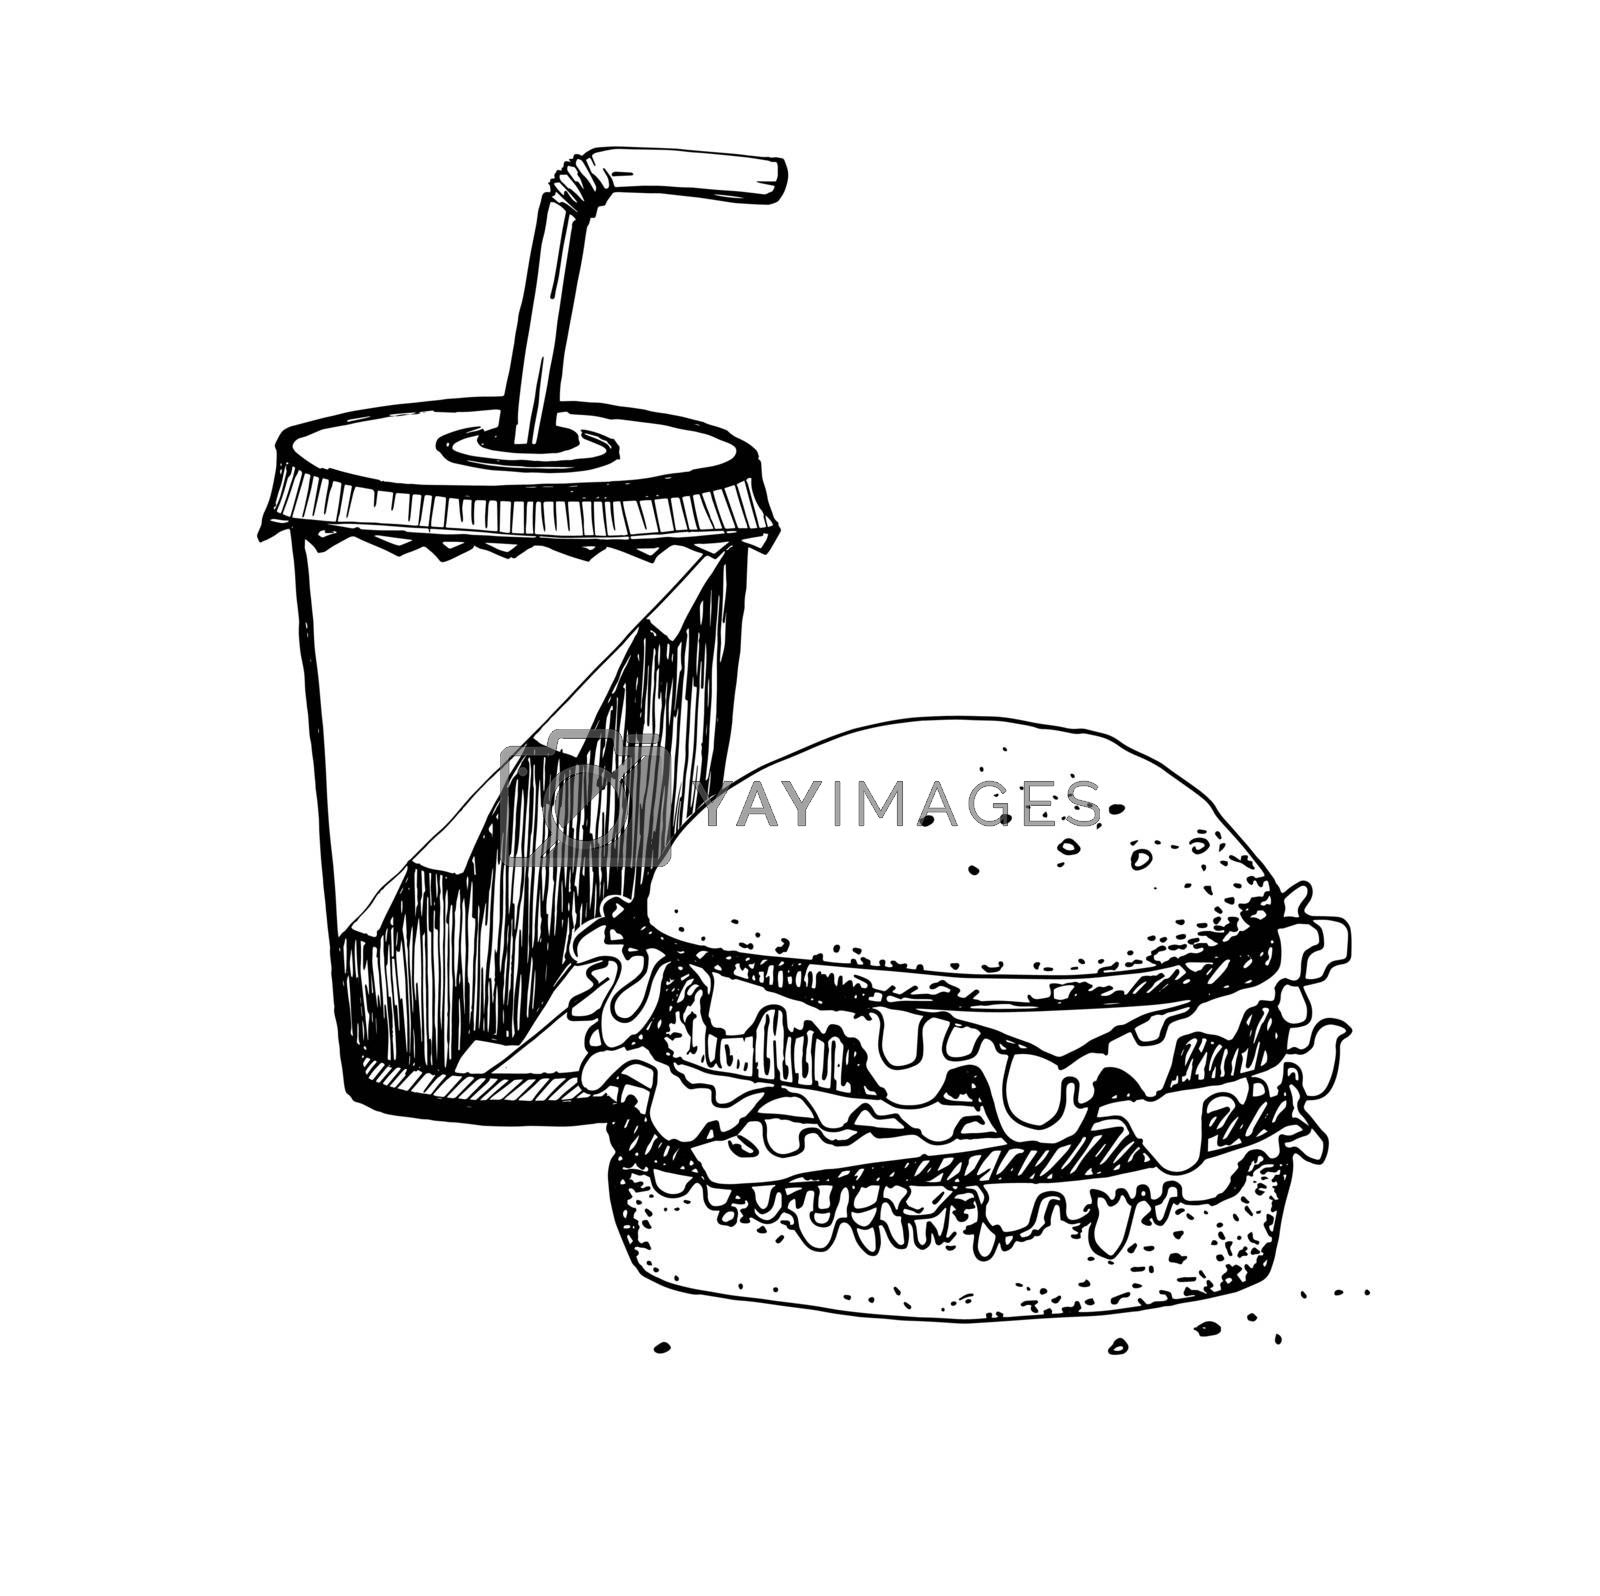 Hand Drawn Sketch of Big Hamburger and Soda Cup. Vintage Sketch. Great for Banner, Label, Poster